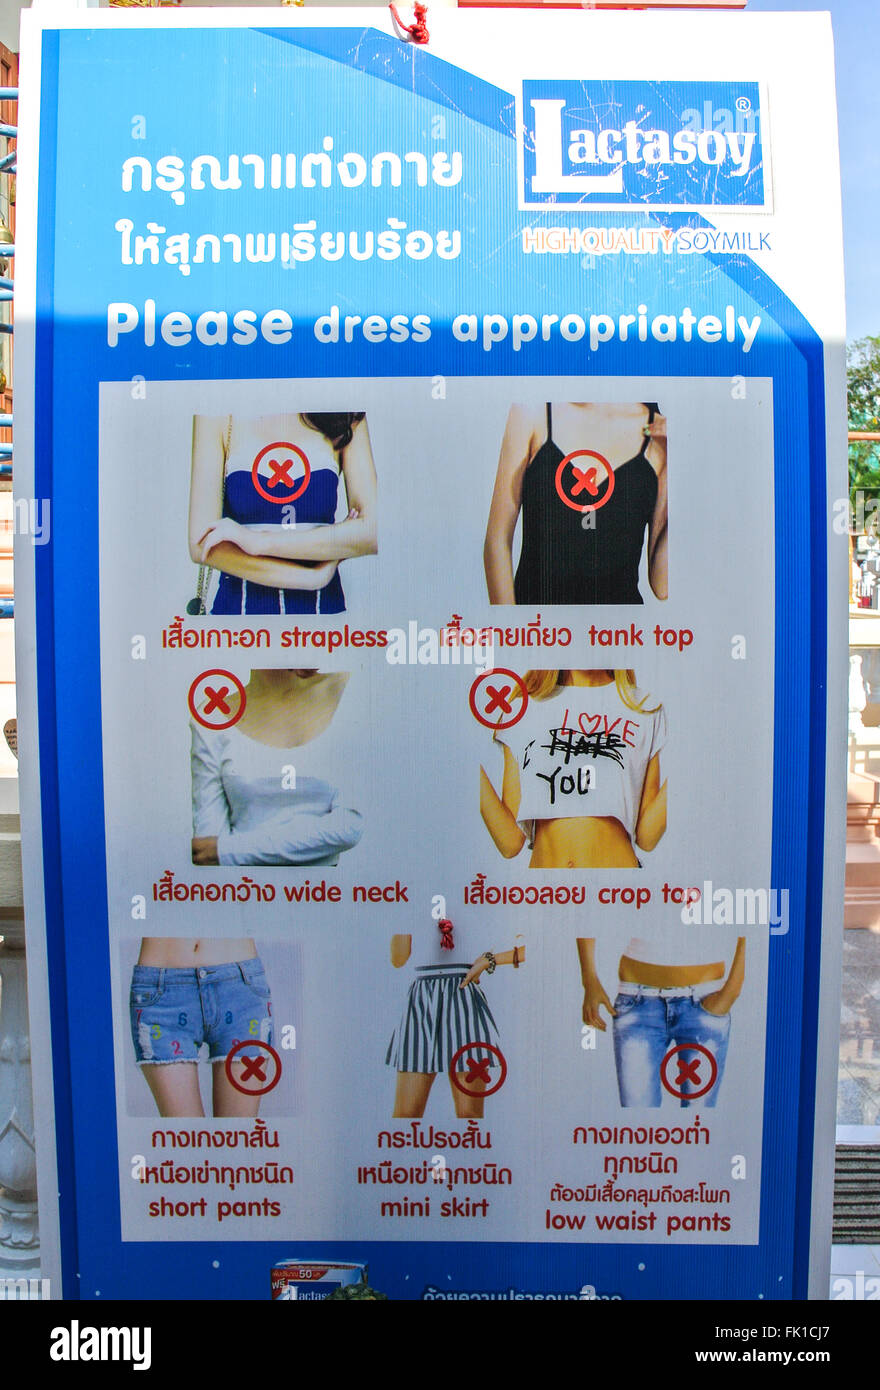 Thailand appropriate dress code for Thai Temples - Stock Image